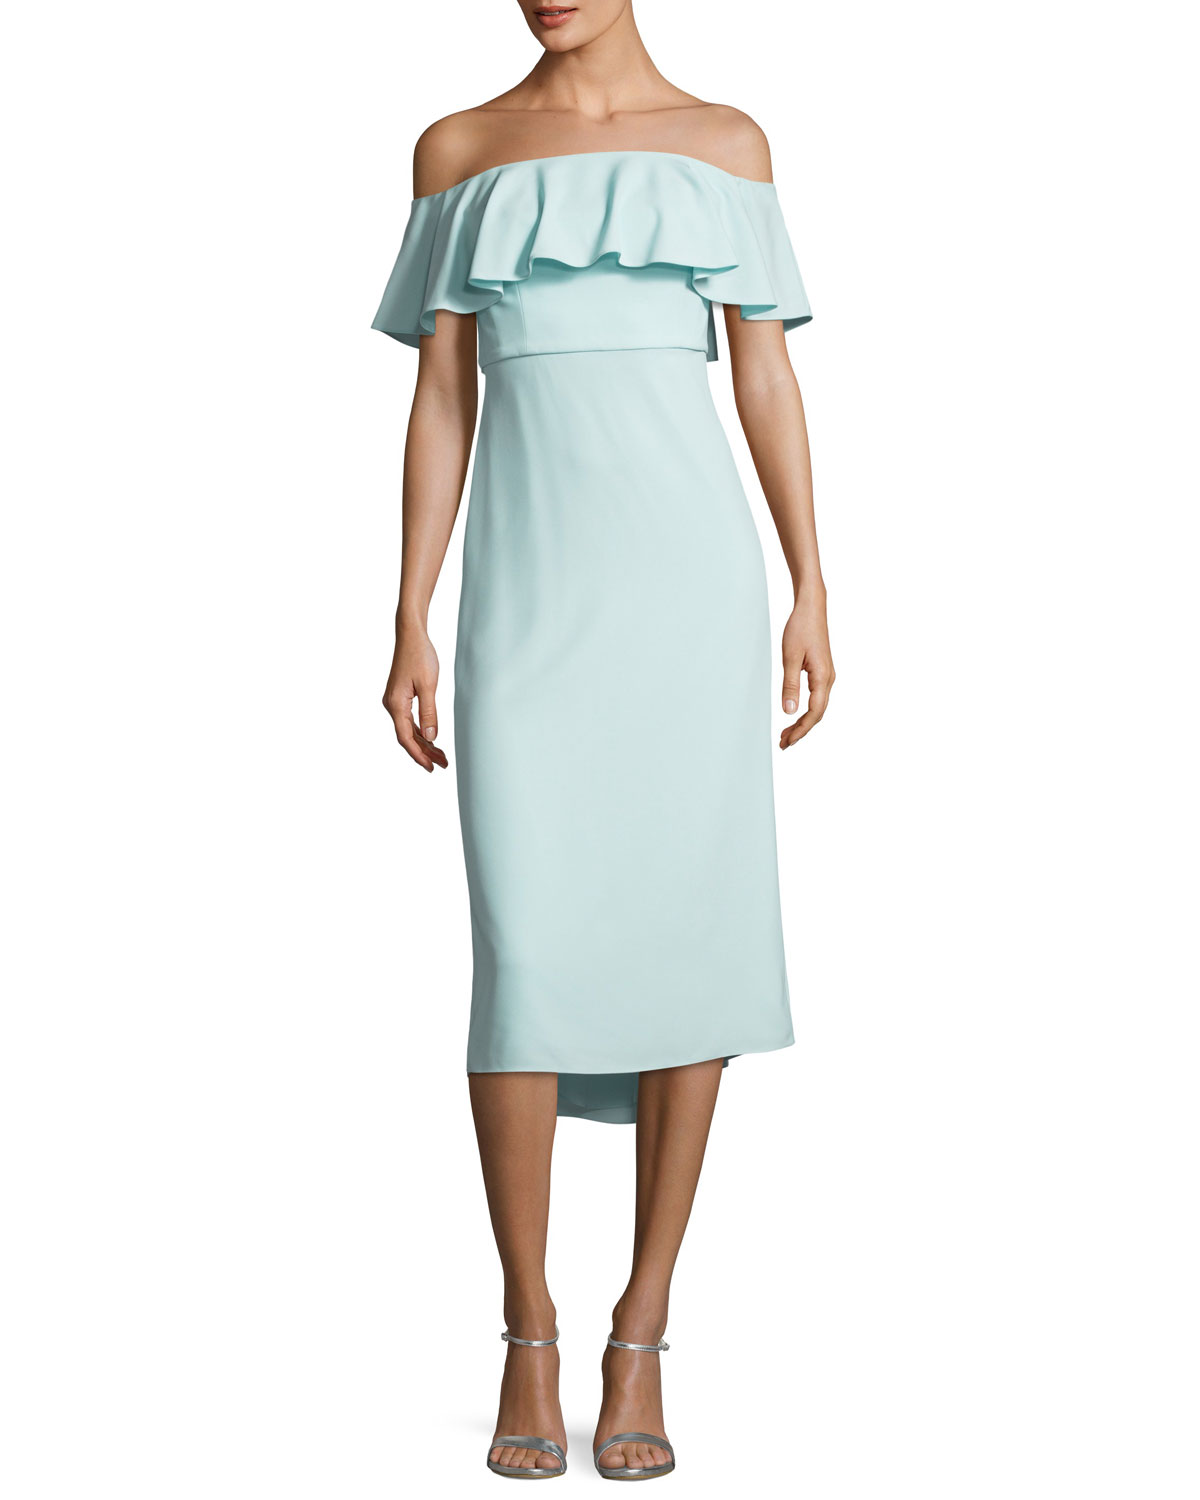 ad2949ac0b6f2 Halston HeritageRuffled Off-the-Shoulder Flounce Cocktail Dress